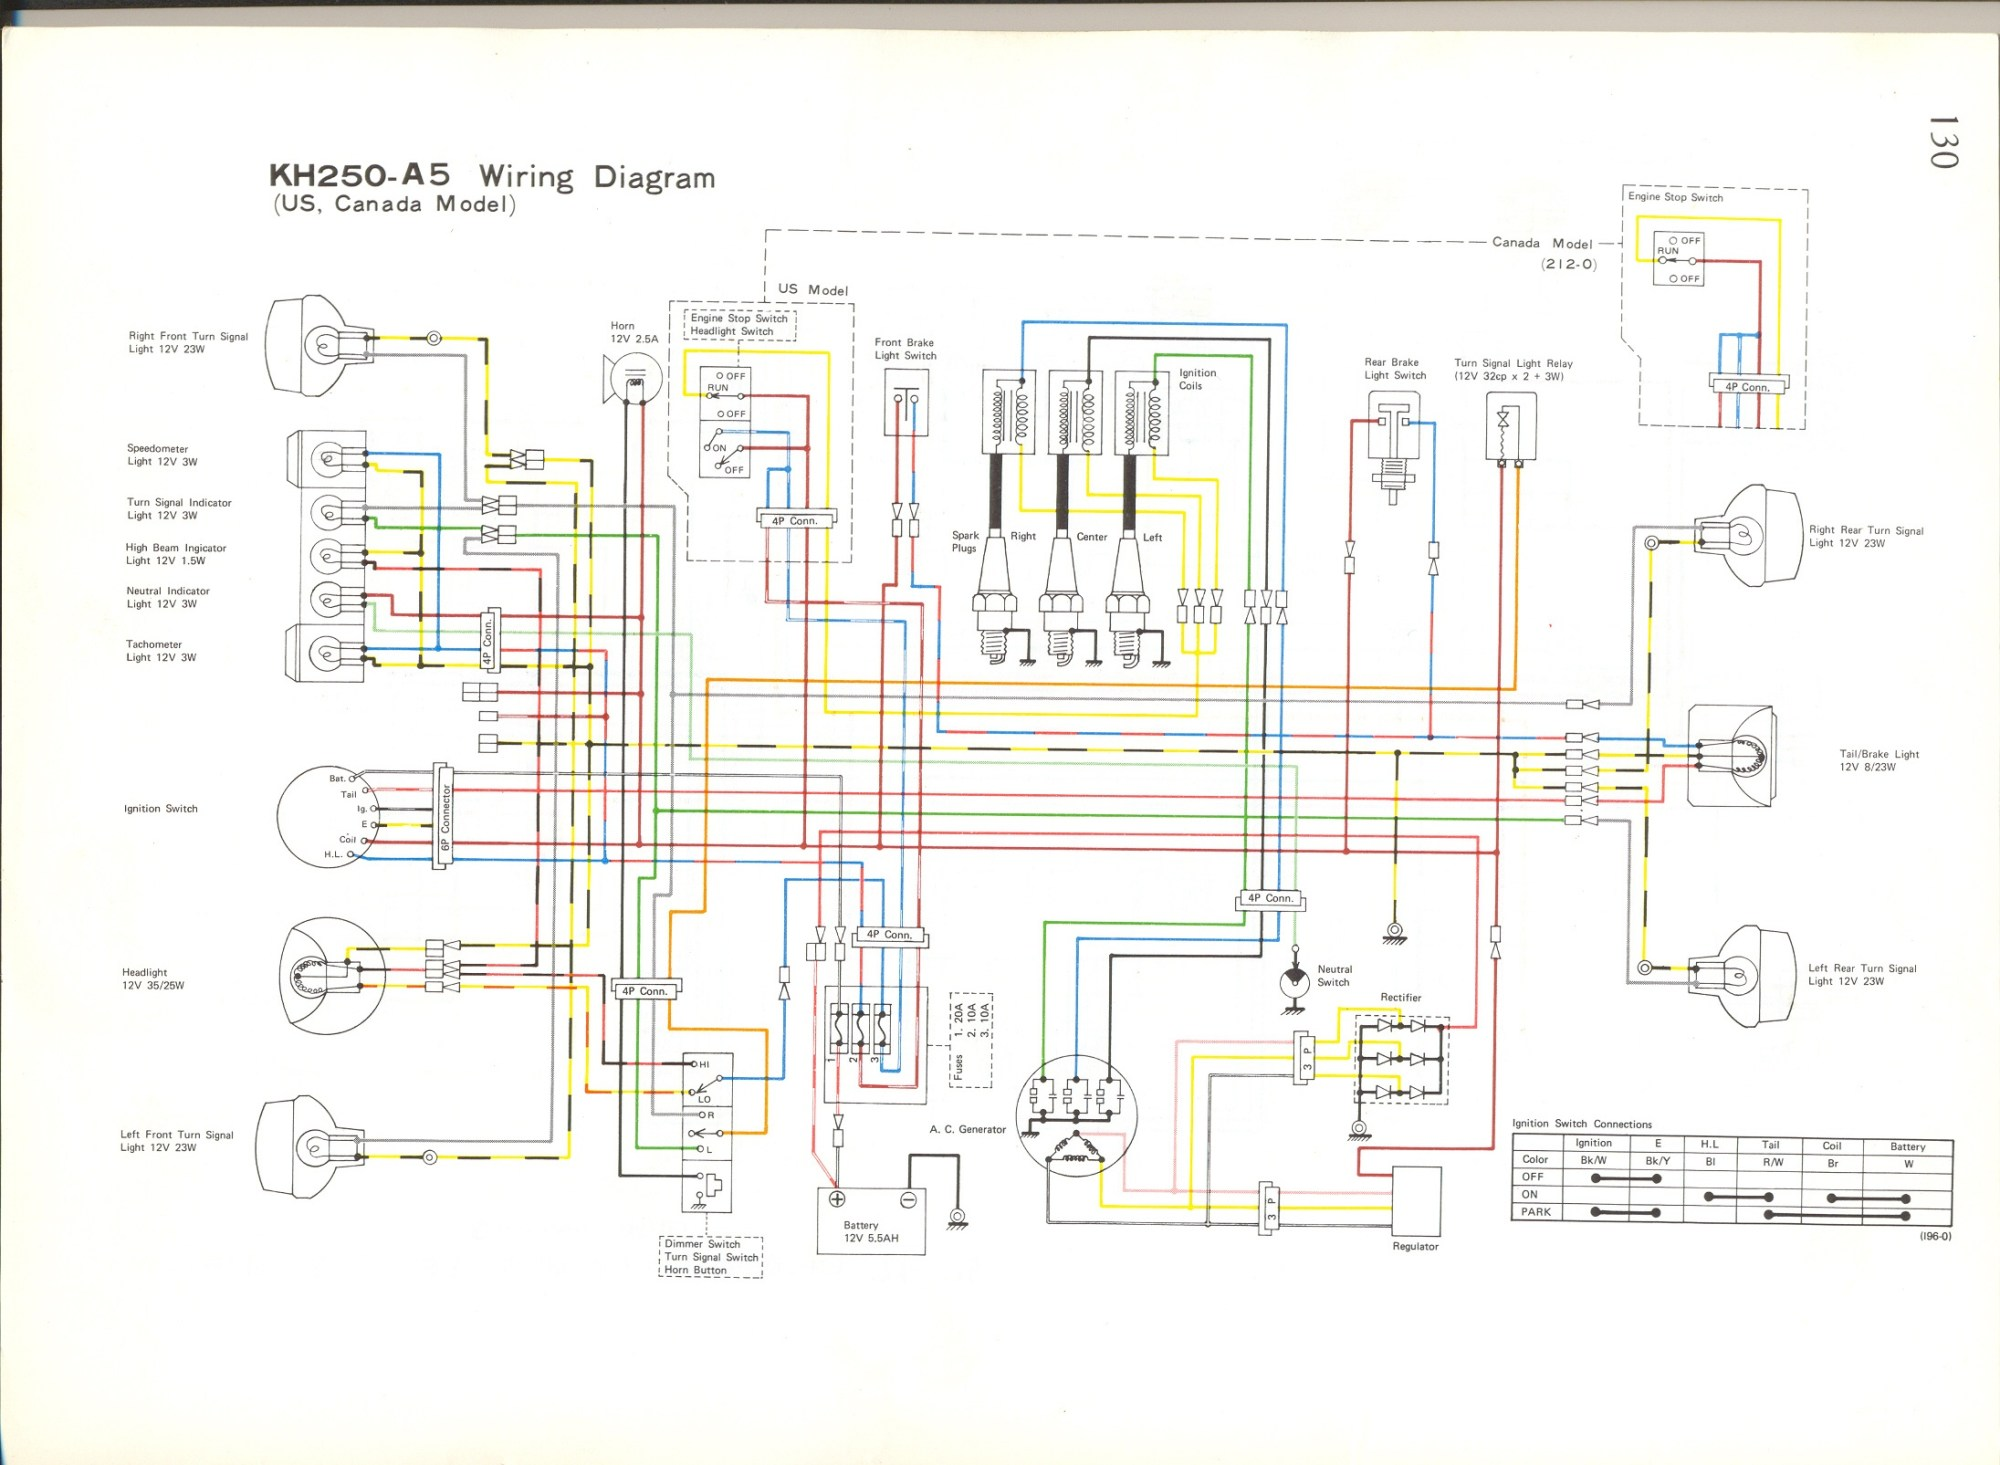 hight resolution of kh250a5 wiring diagrams kh250a5